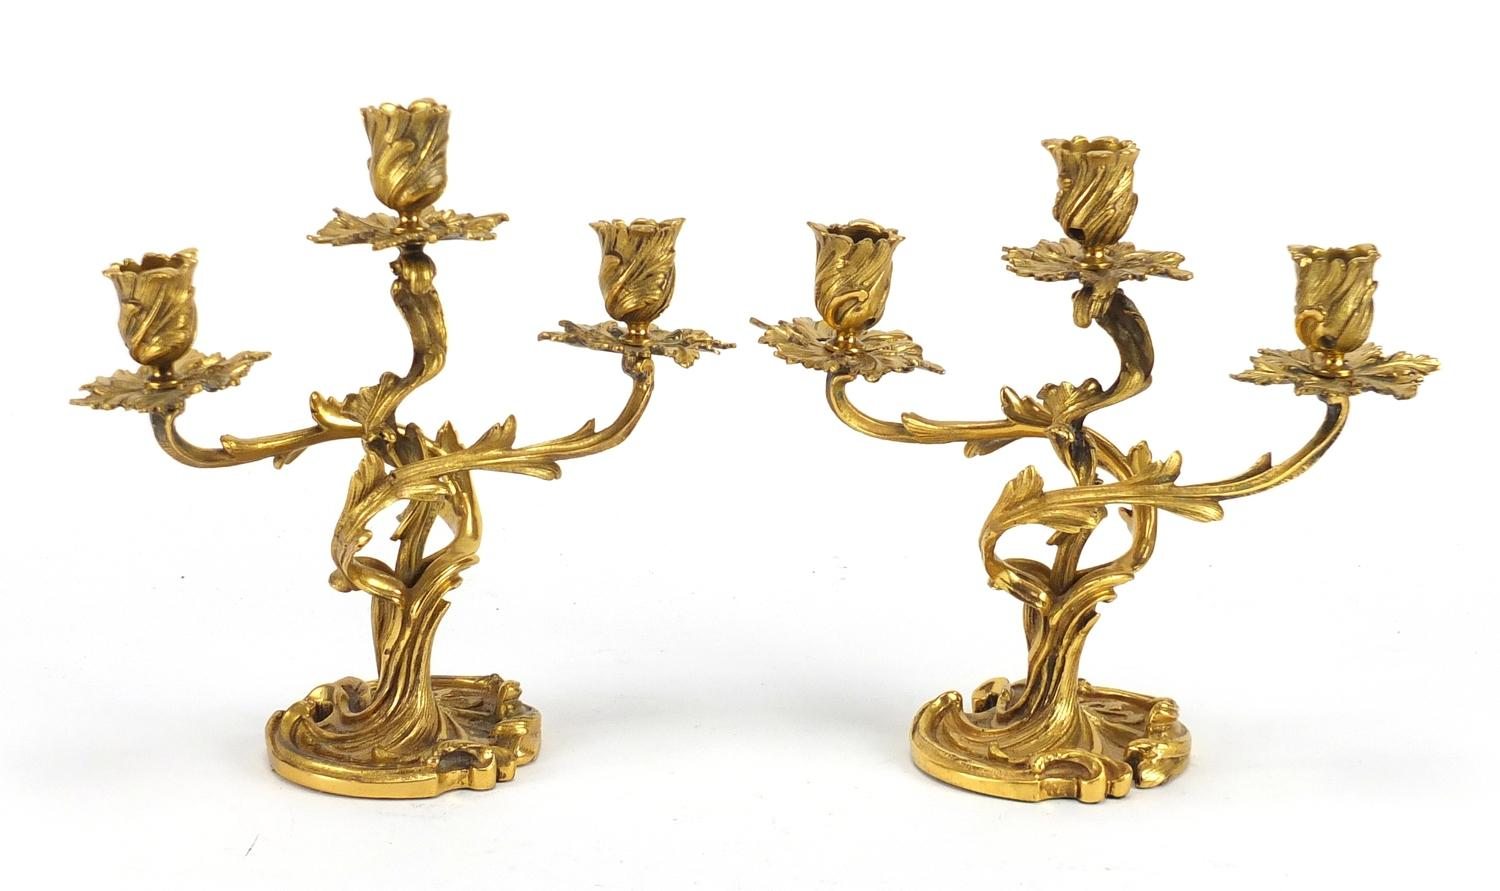 Lot 15 - Pair of 19th century French Louis XV ormolu three branch candelabras, each 25cm high :For Further